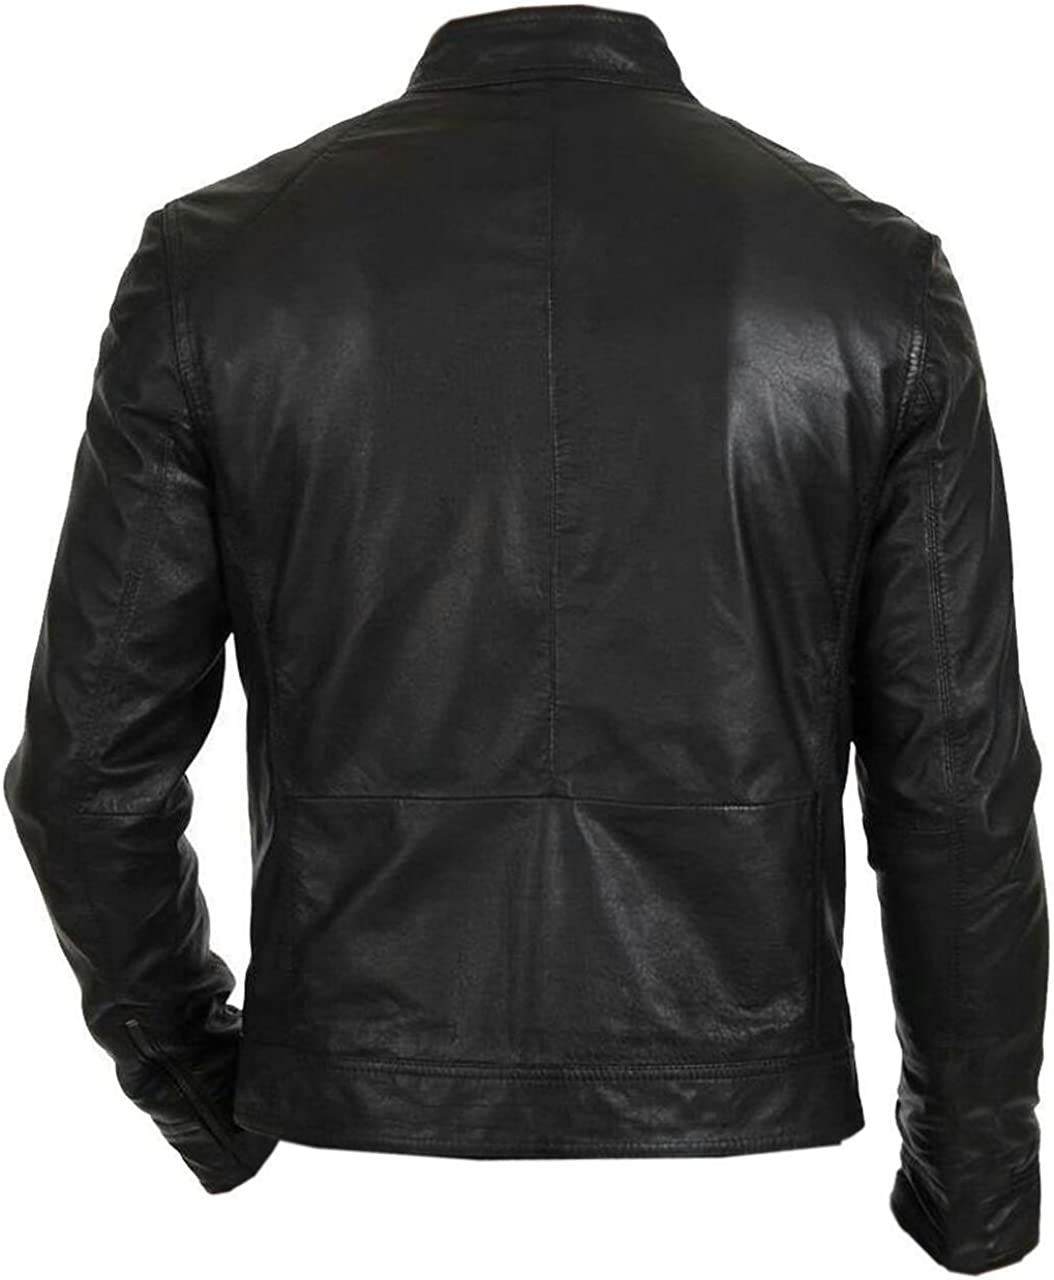 ZS LEATHER Genuine Lambskin Premium Quality Leather Jacket ZSLM-72